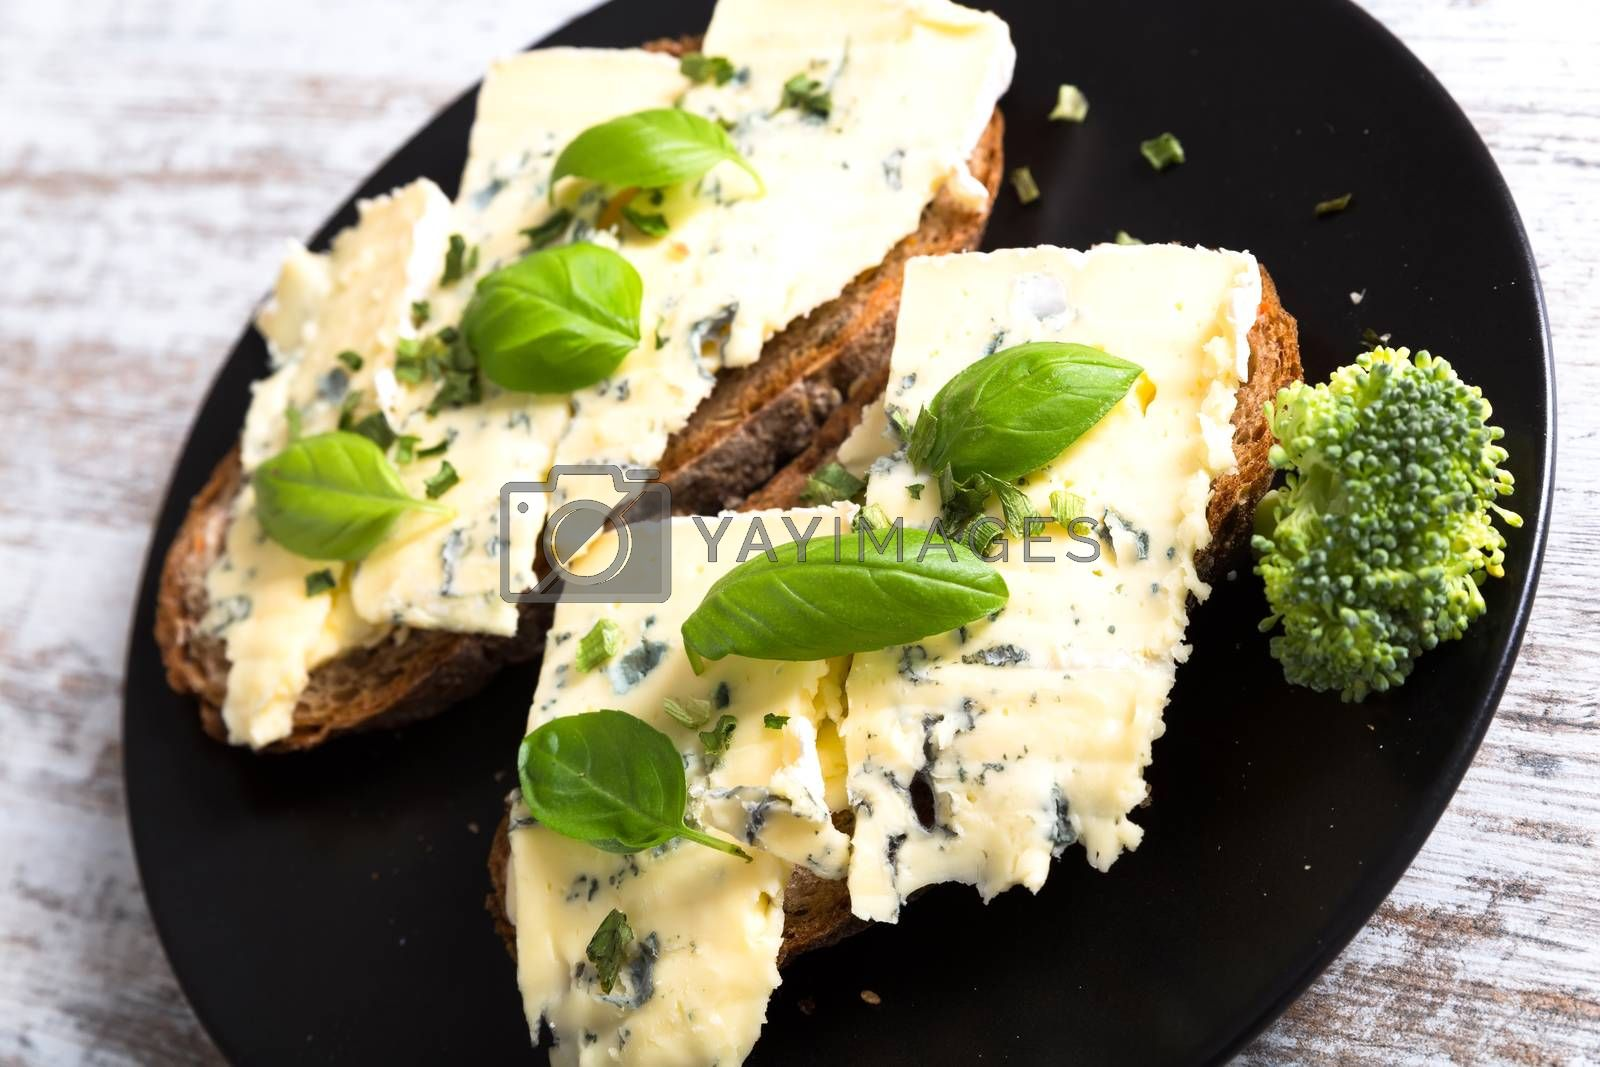 Sandwiches with Roquefort cheese by Spectral